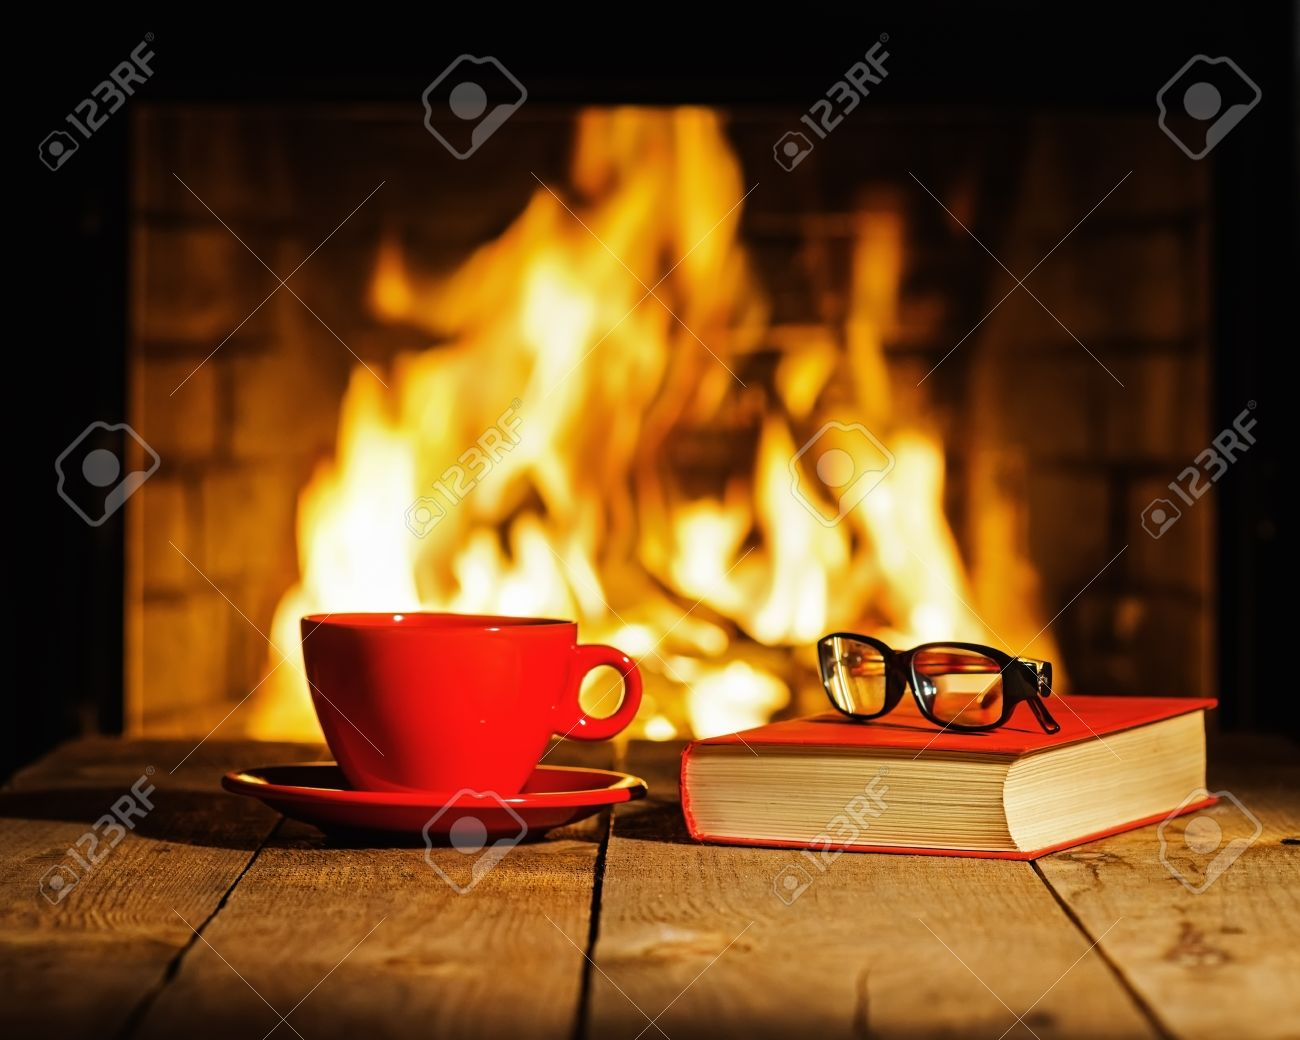 Red Cup Of Coffee Or Tea Glasses And Old Book On Wooden Table